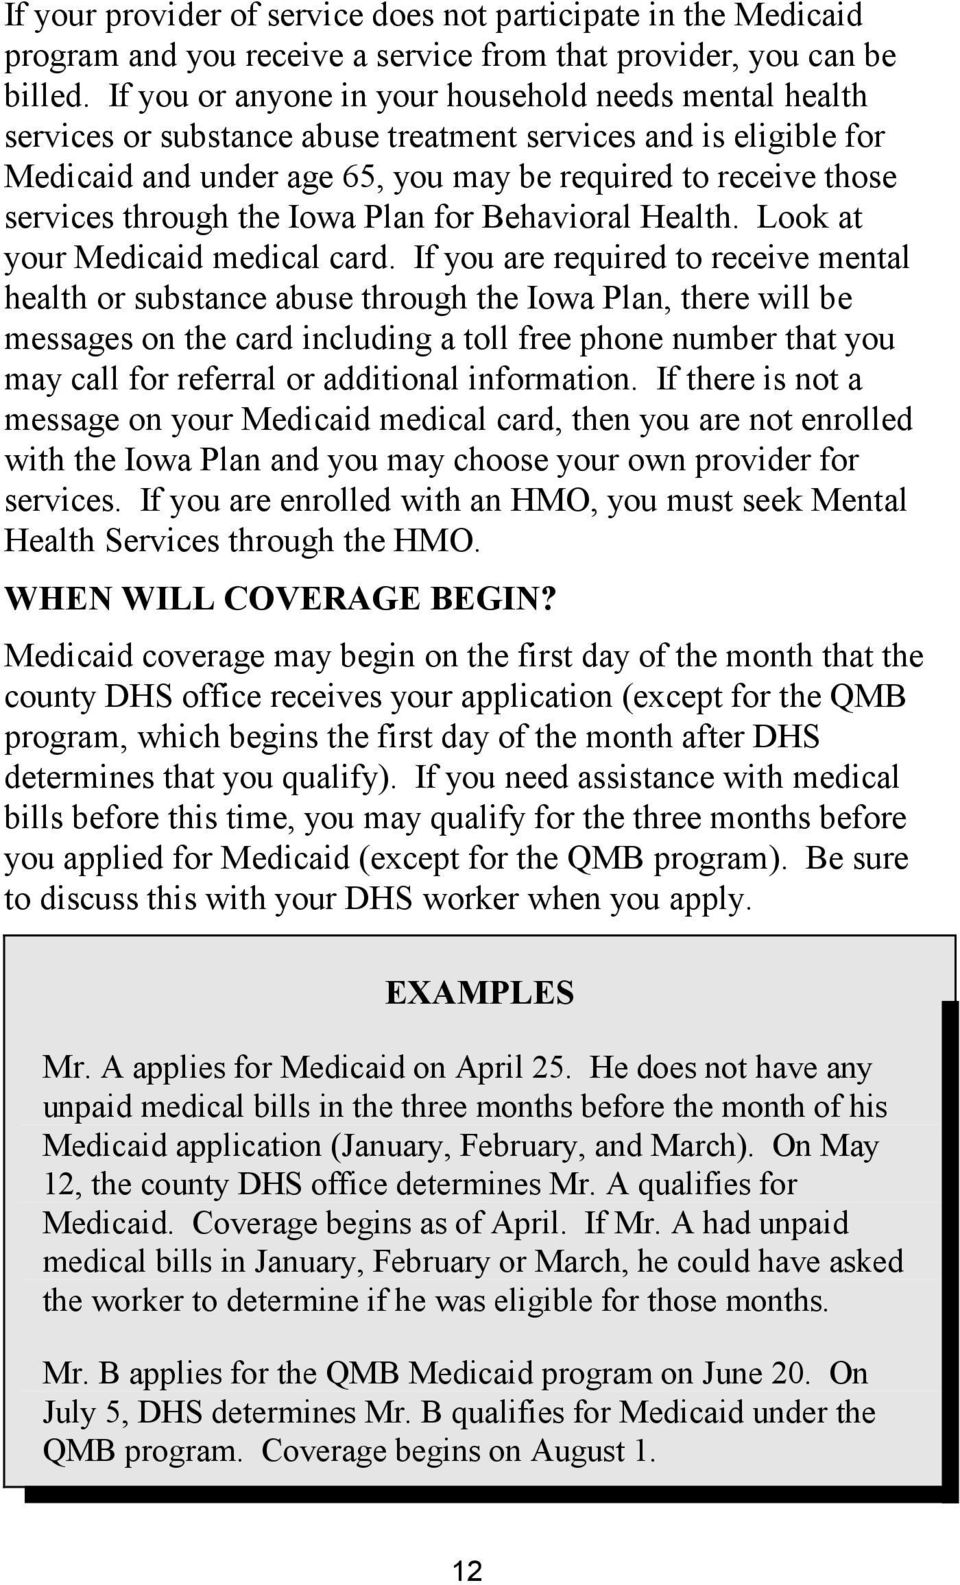 through the Iowa Plan for Behavioral Health. Look at your Medicaid medical card.